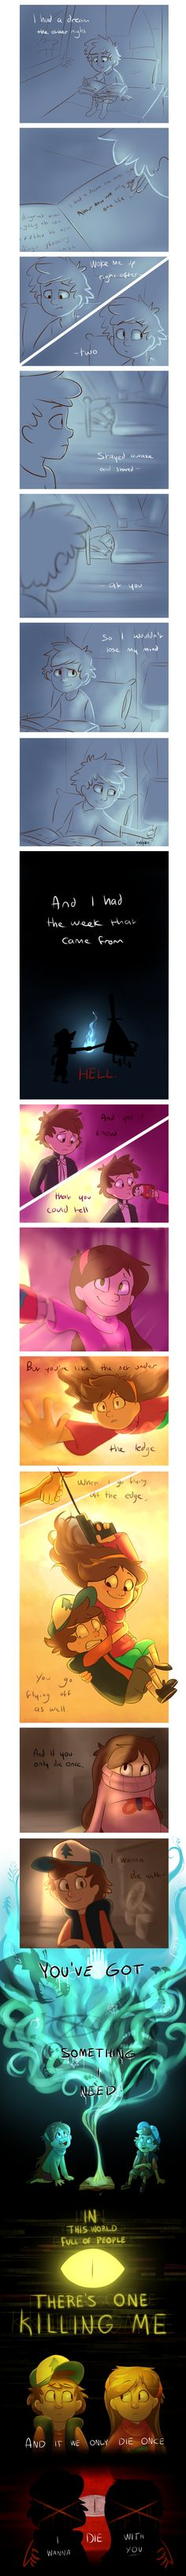 Something I Need - Gravity Falls by Finchwing on DeviantArt  this is sad